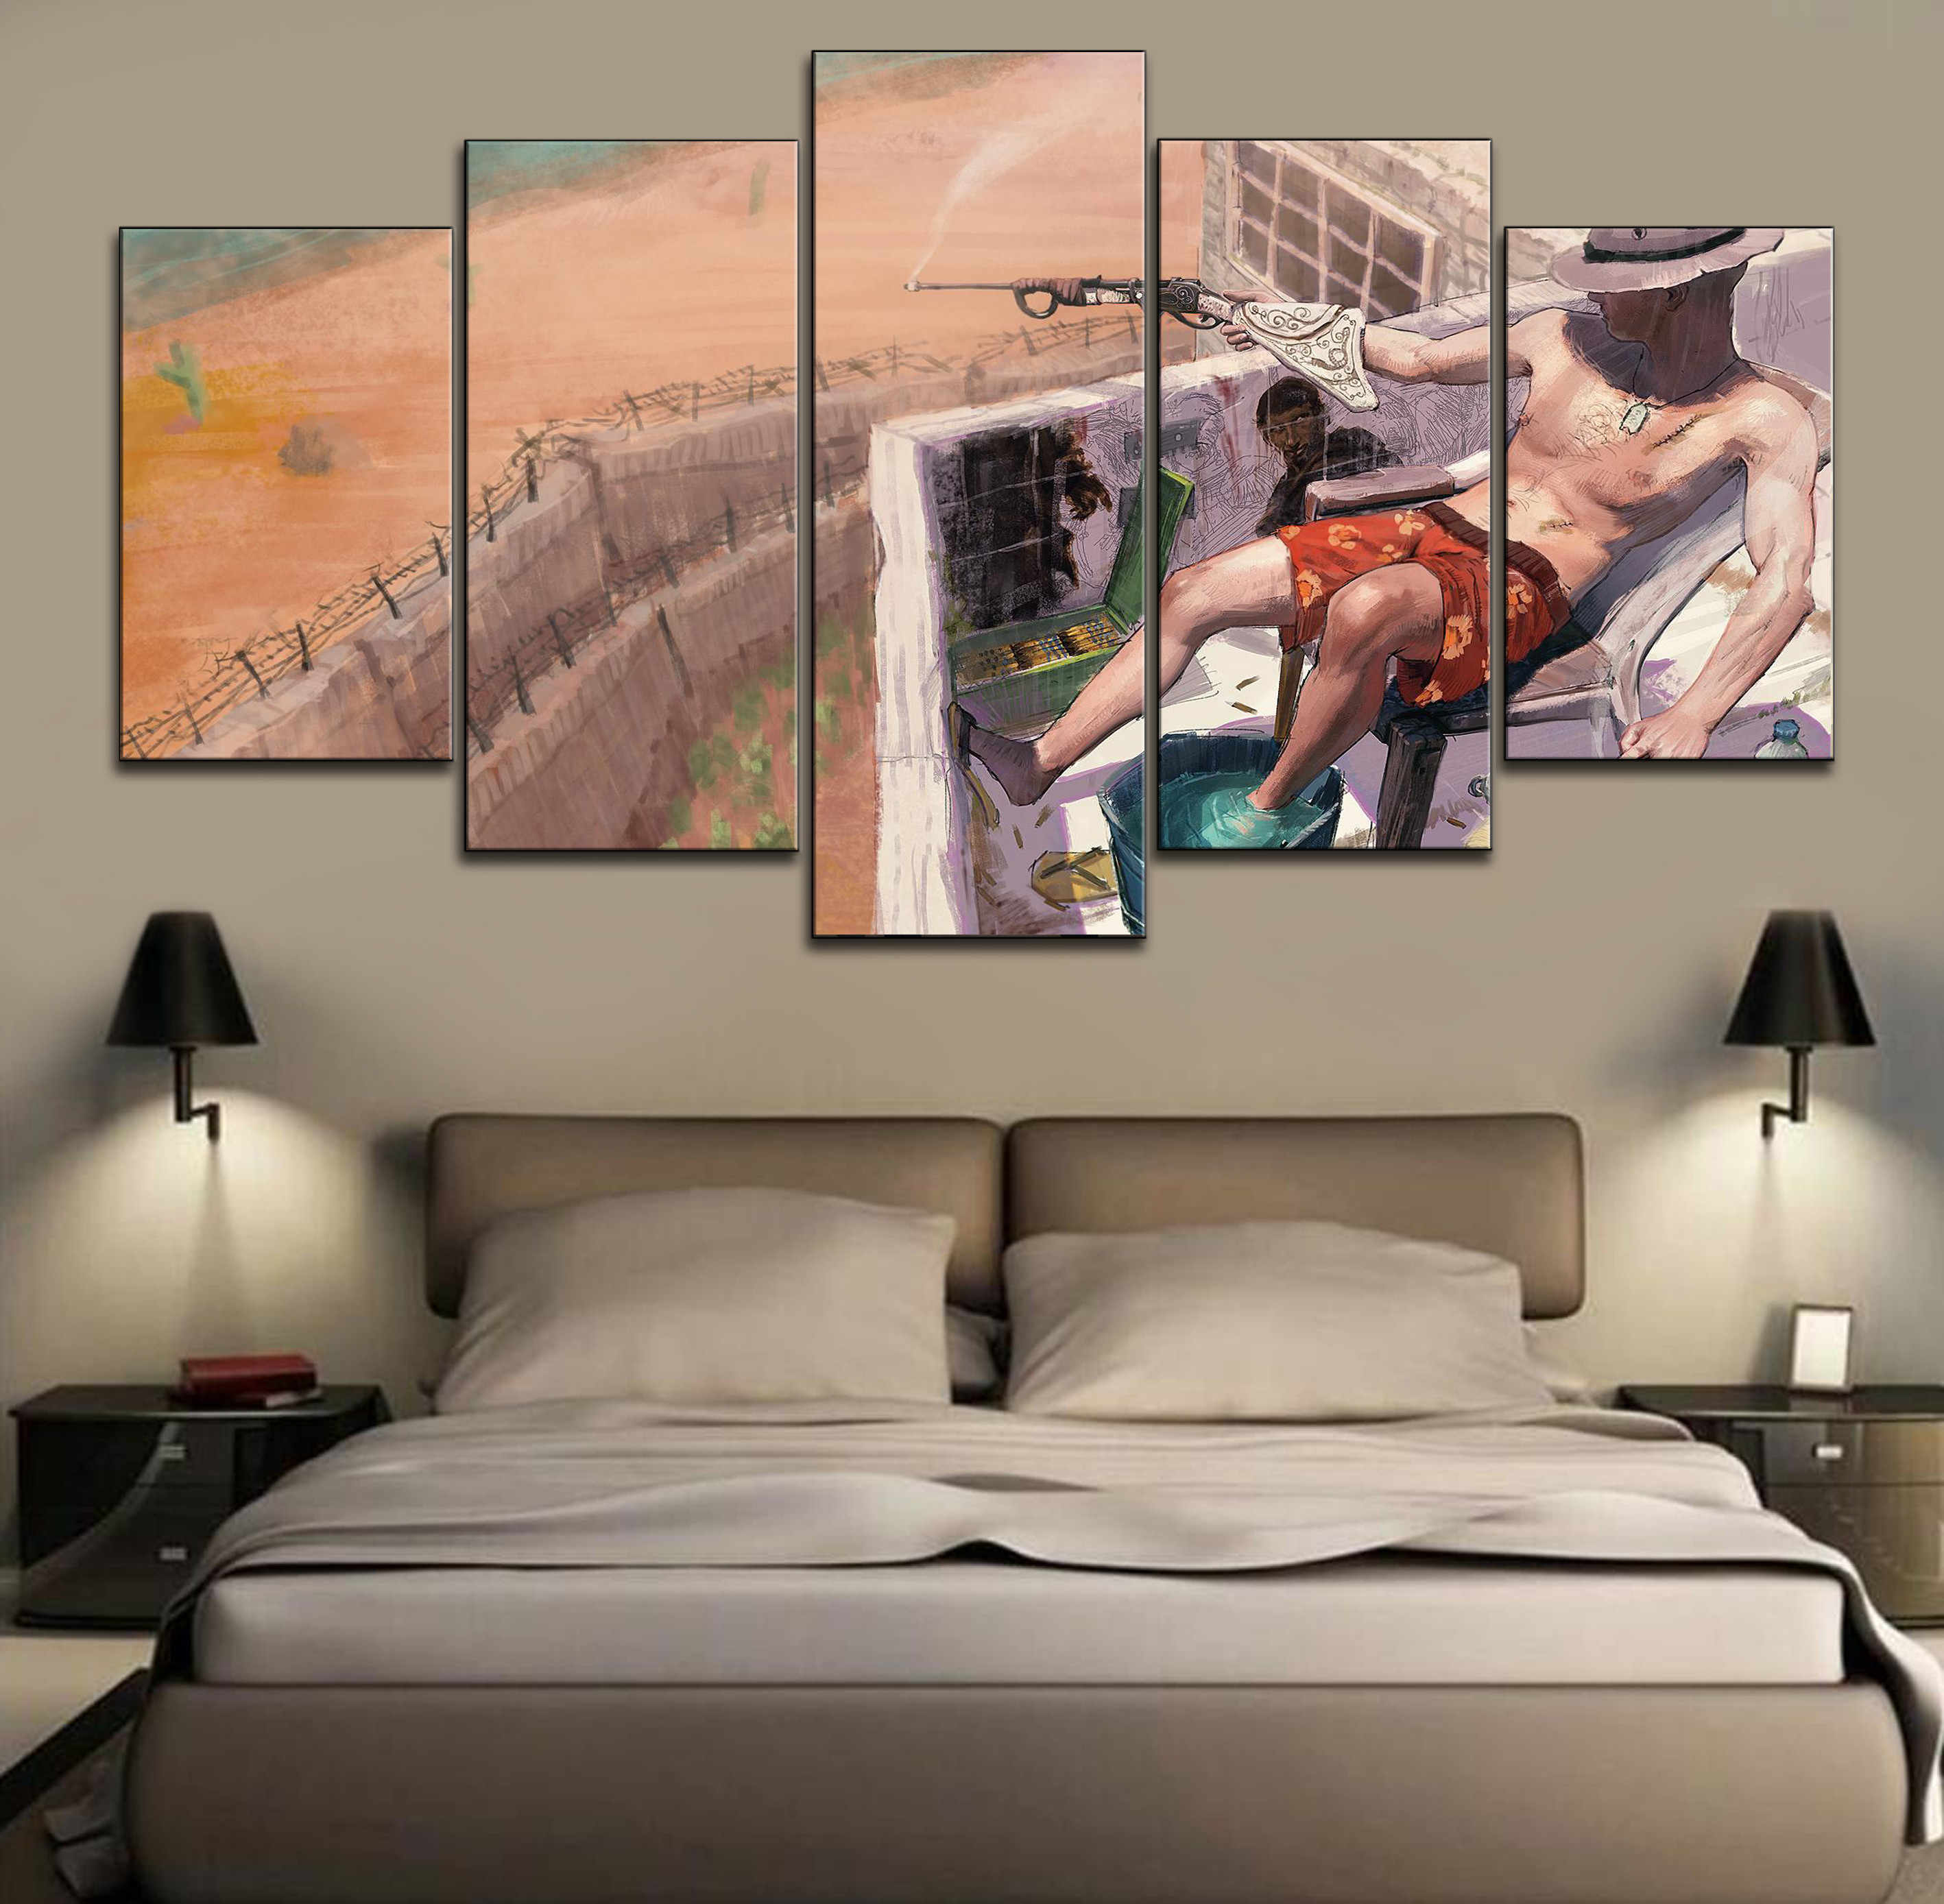 HD Print Picture Game RUST Painting Wall Art Decor Modular Framework Canvas Modern Artwork Poster 5 Piece Home Decor Picture